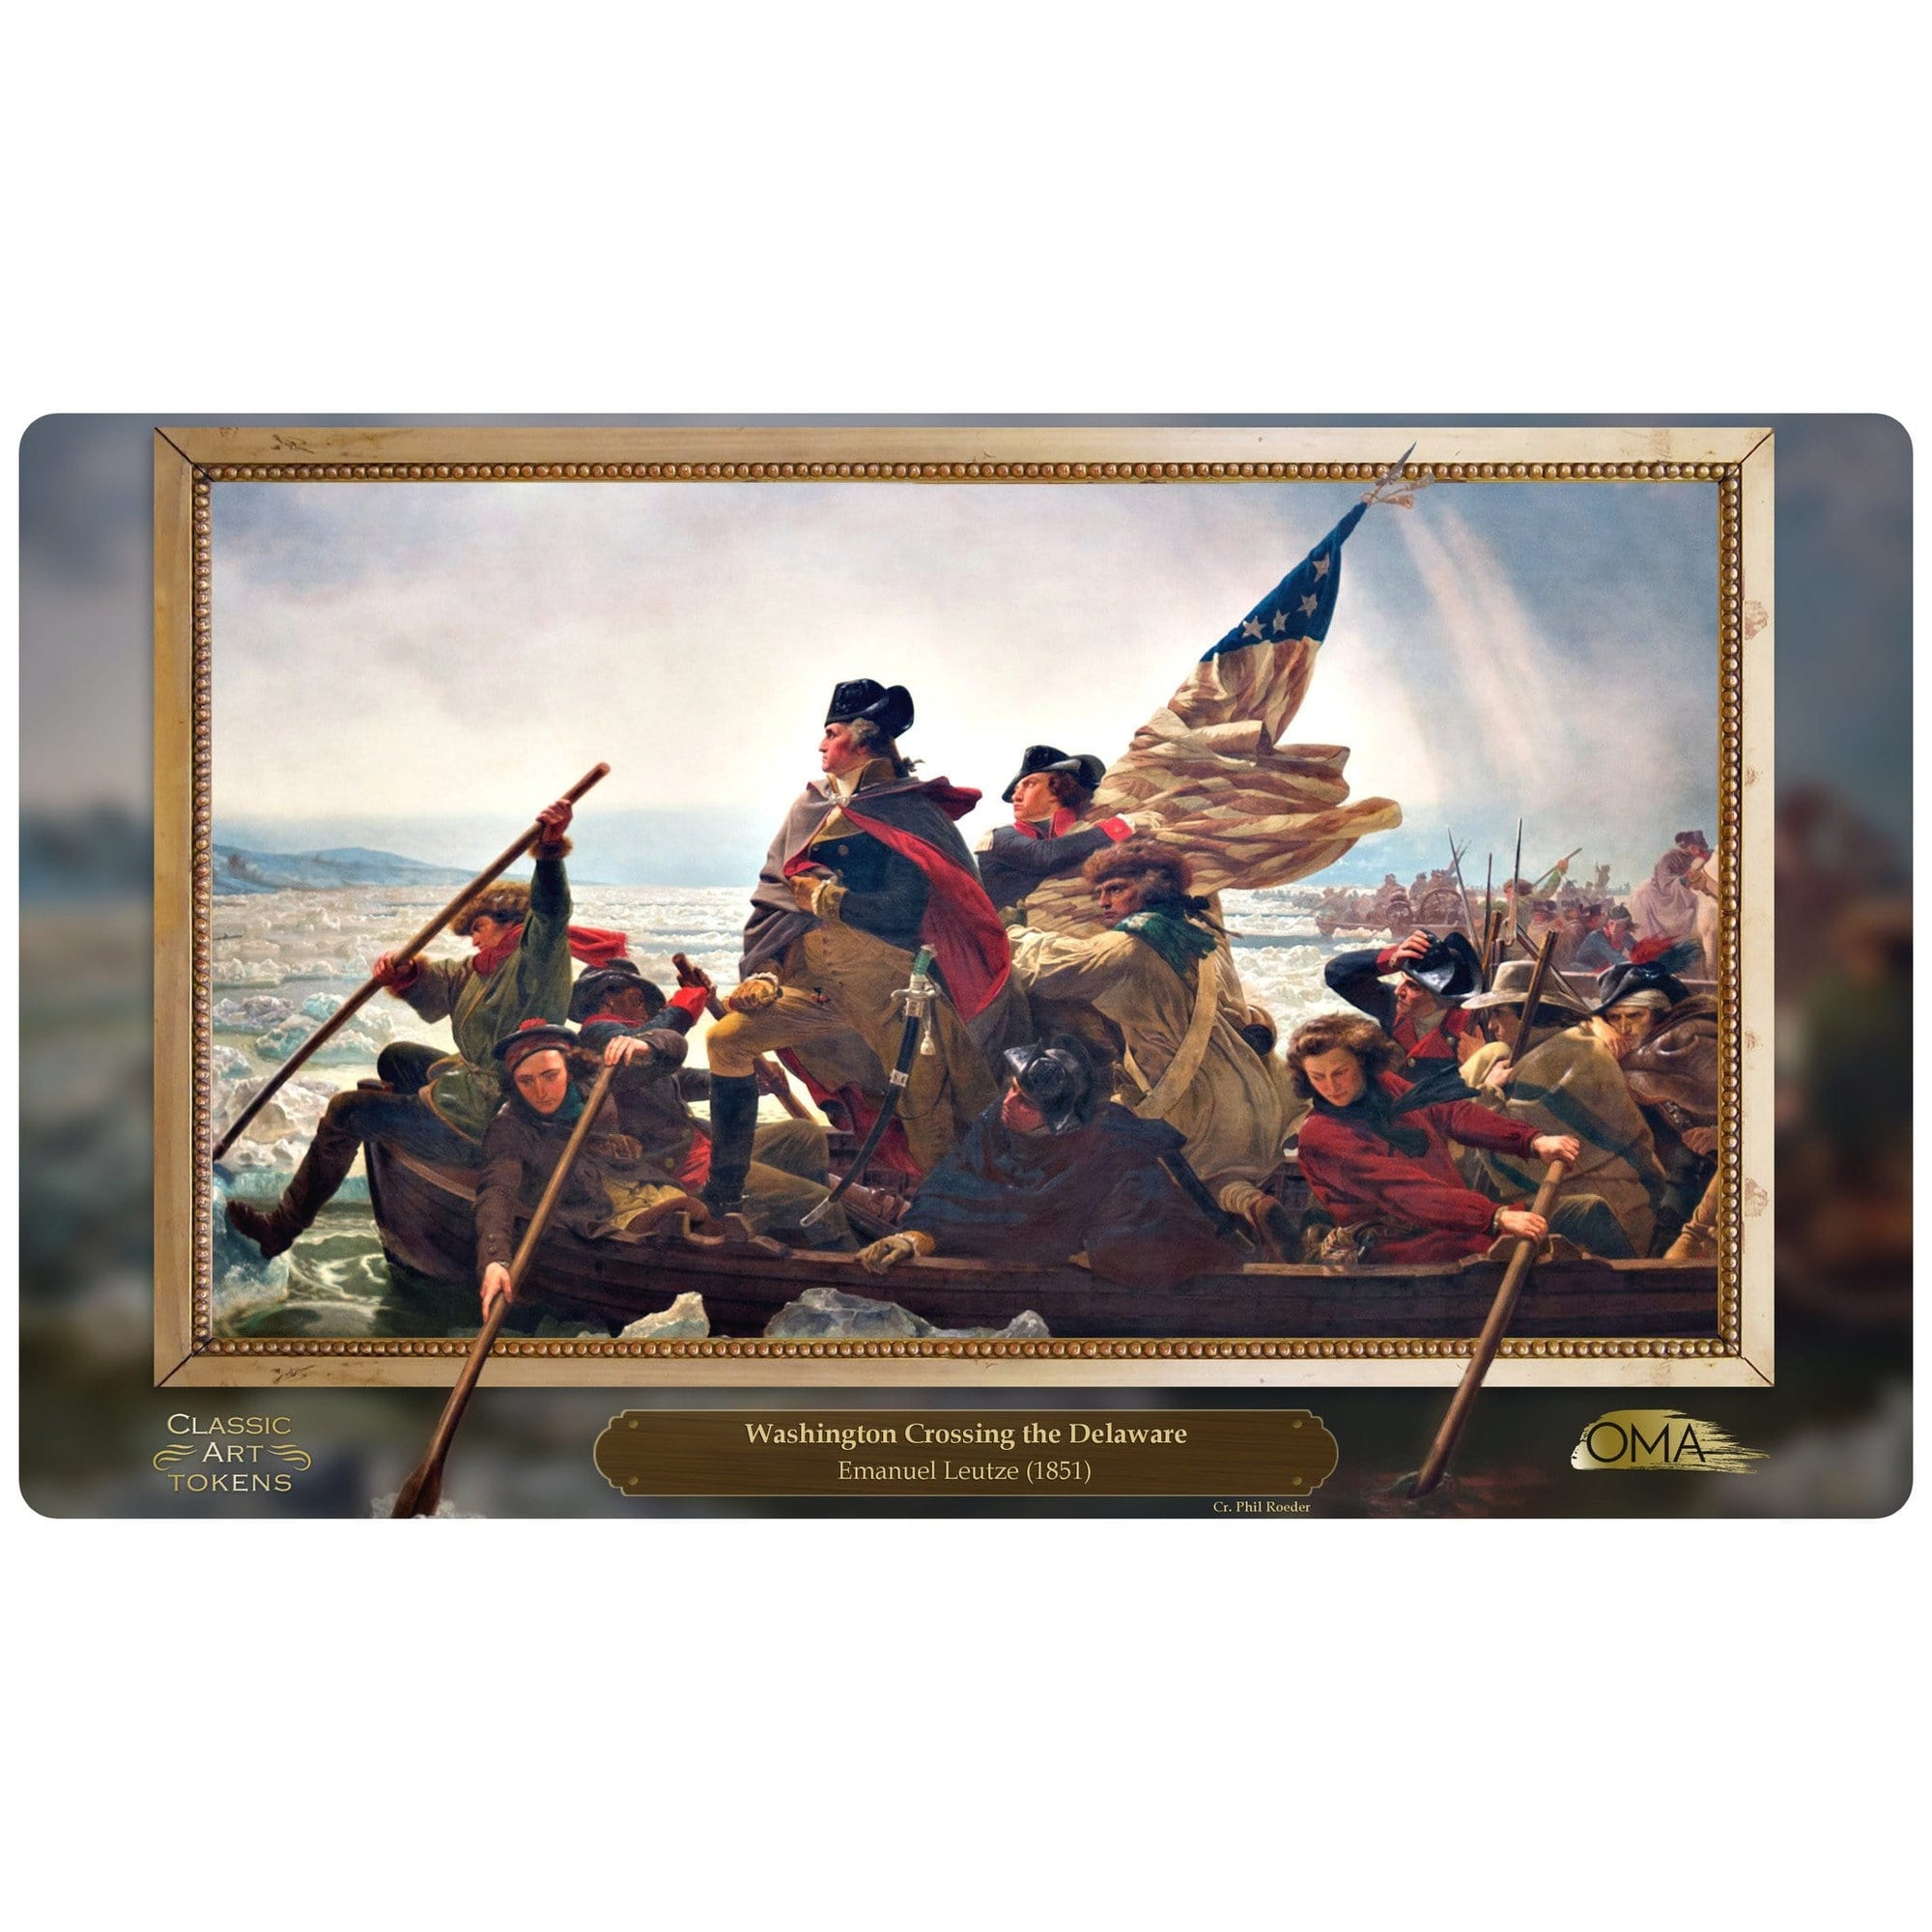 Soldier Playmat by Emanuel Leutze - Playmat - Original Magic Art - Accessories for Magic the Gathering and other card games